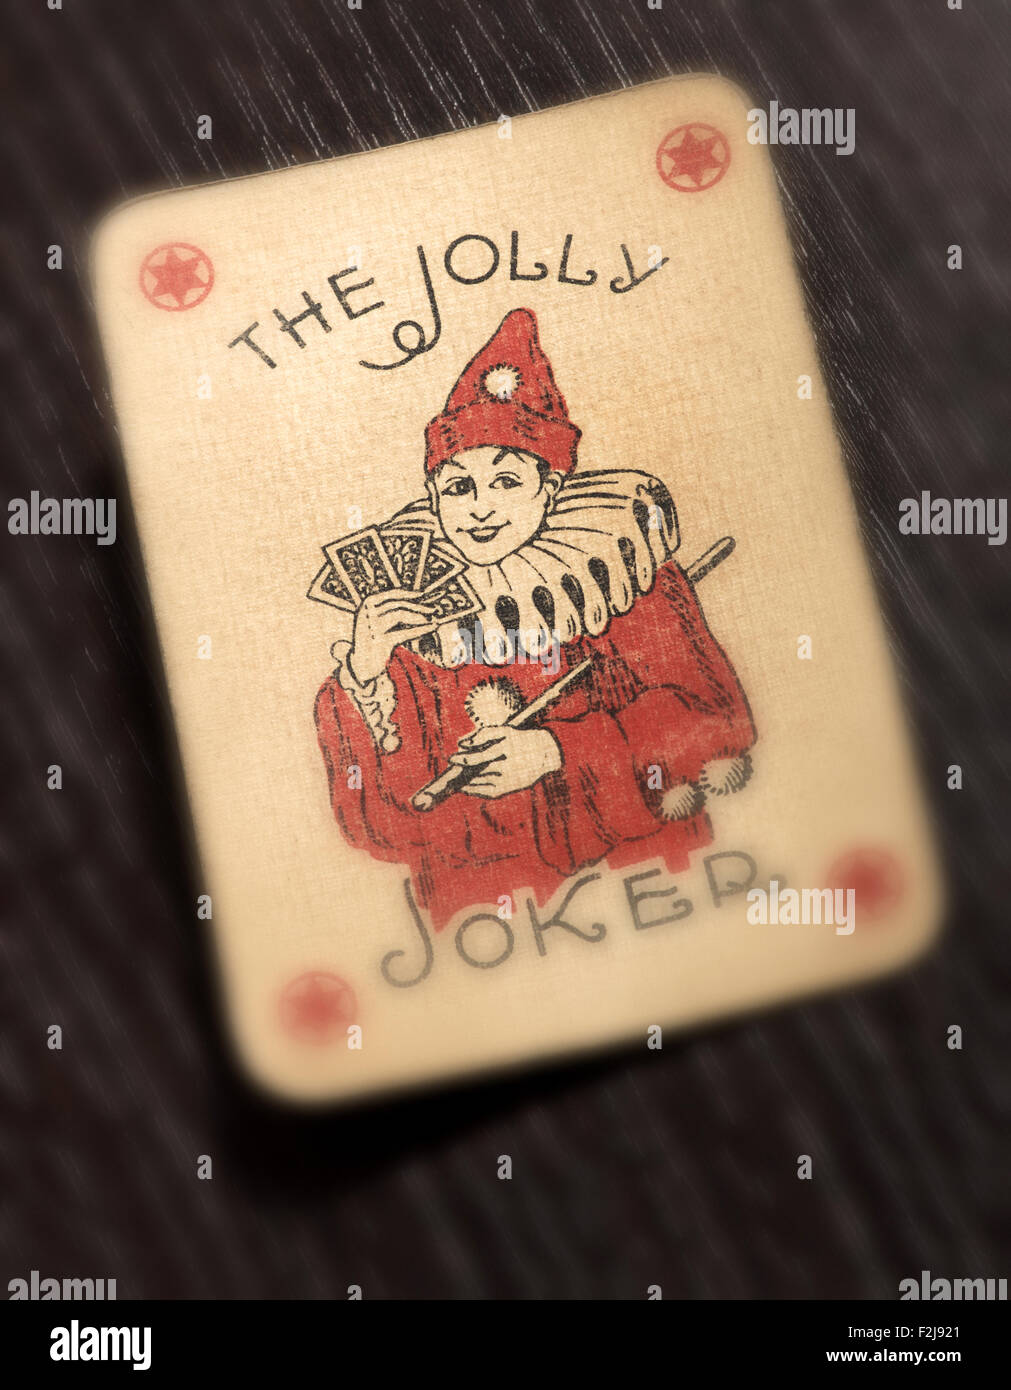 Vintage Joker playing card - Stock Image